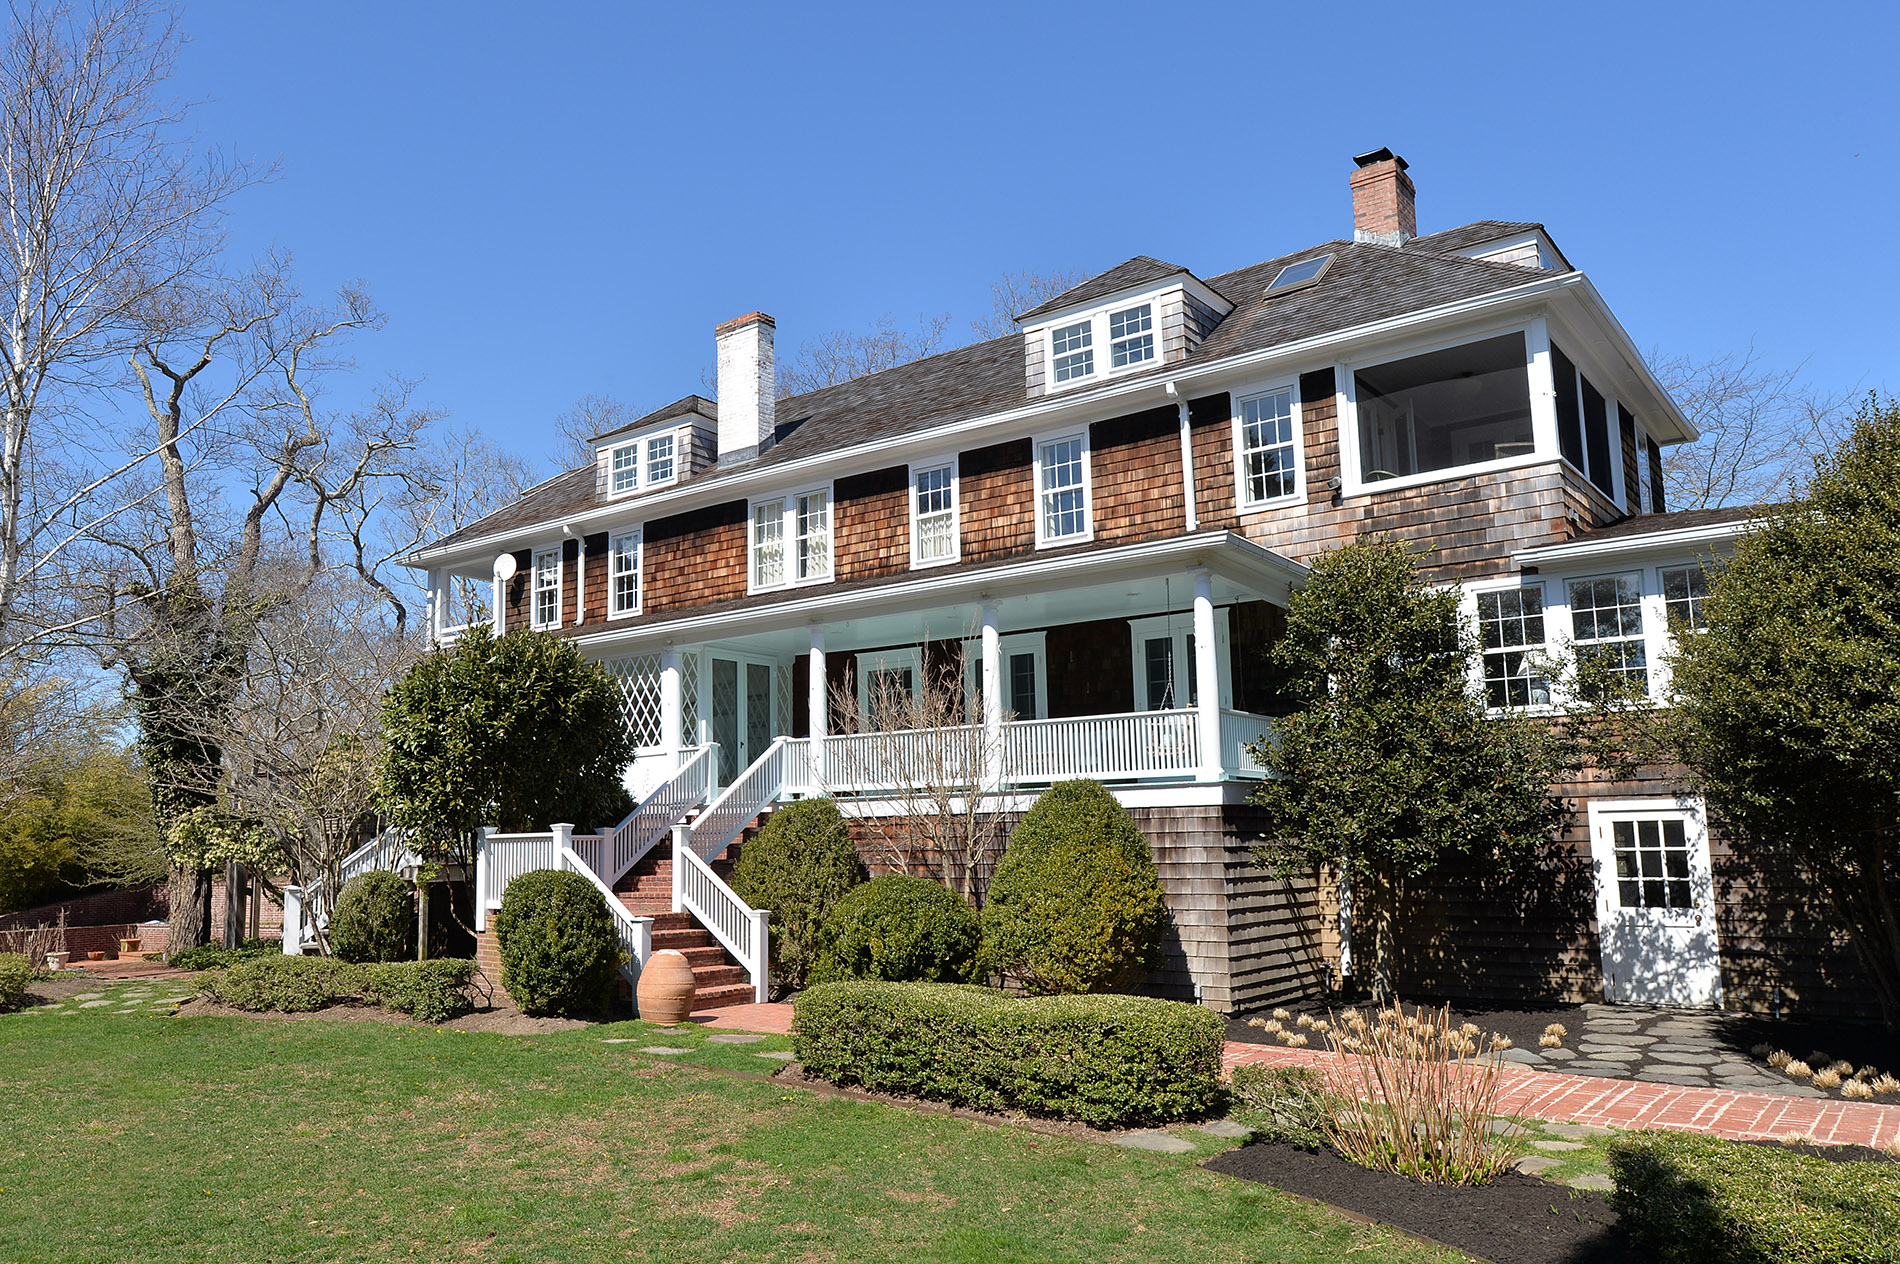 Image gallery houses east hampton ny for Houses for sale hamptons